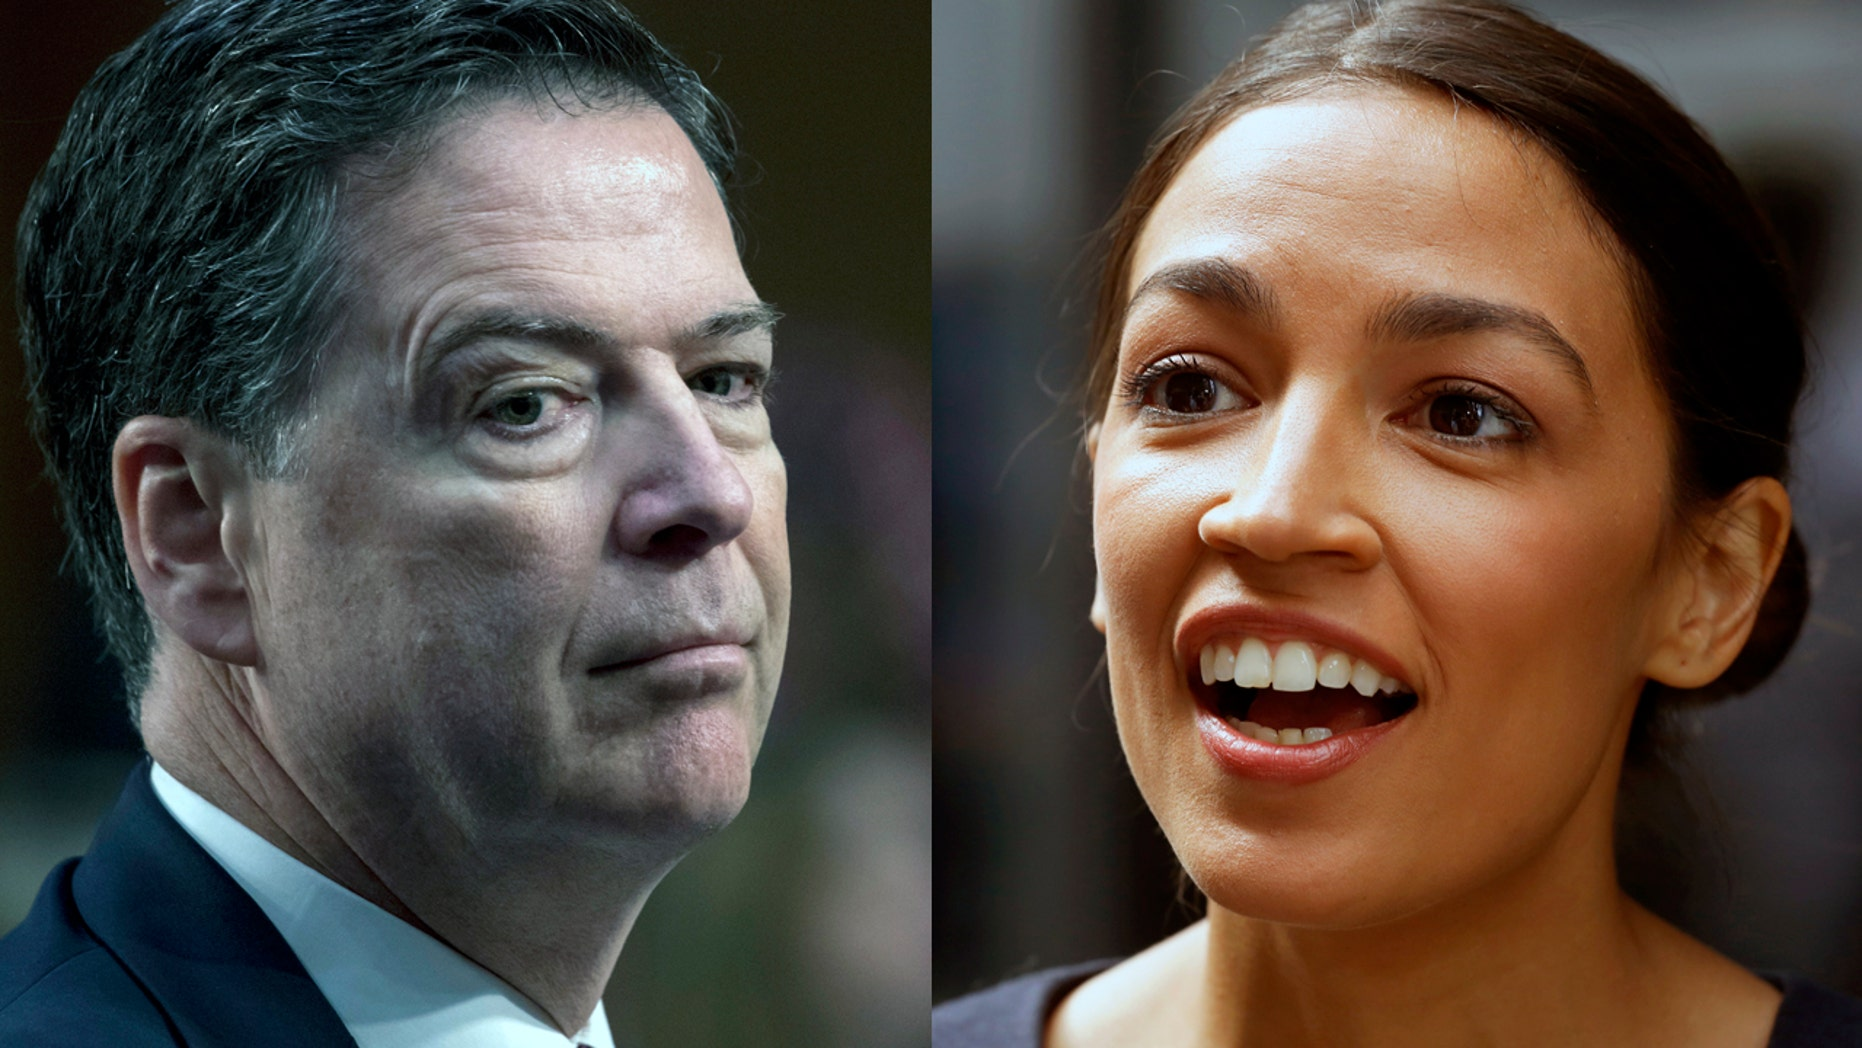 Former FBI Director James Comey, left, and Democratic congressional candidate Alexandria Ocasio-Cortez.